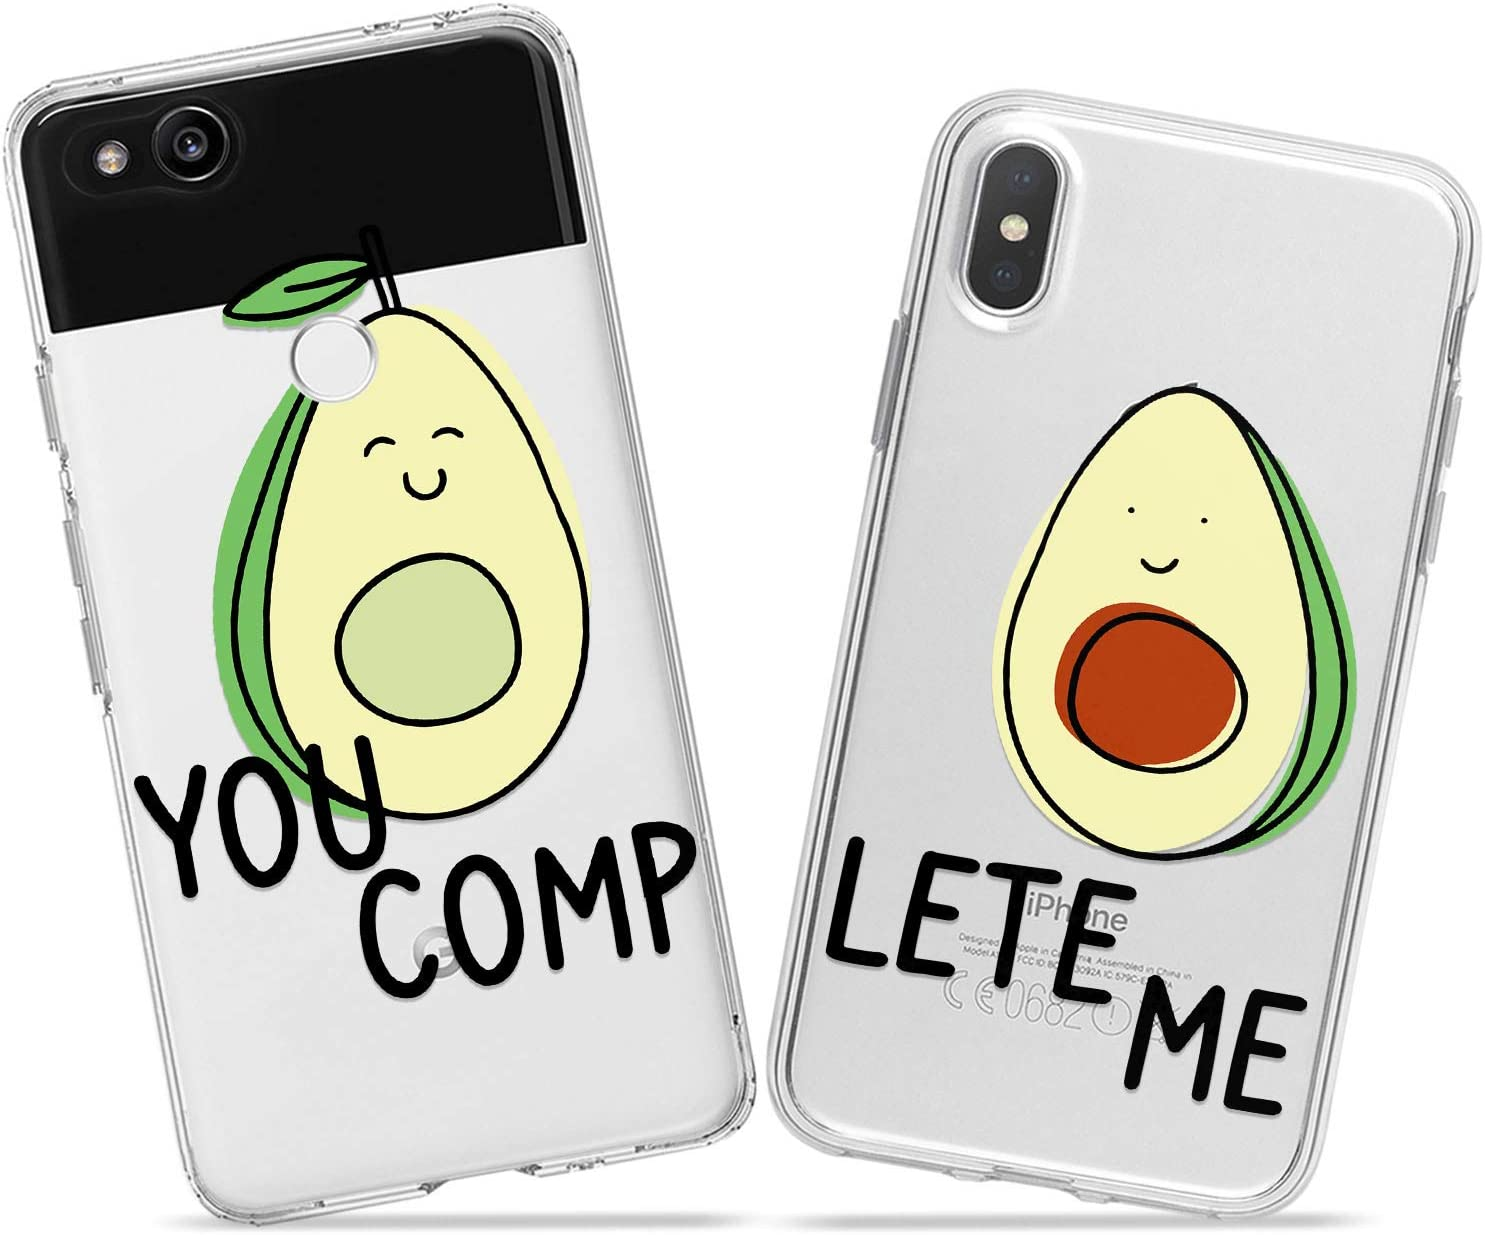 Wonder Wild Cute Avocado Couple Case iPhone Xs Max X Xr 10 8 Plus 7 6s 6 SE 5s 5 TPU Clear Gift Apple Phone Cover Print Protective Double Pack Silicone Alligator Pear Halves Fruit Tropical Food Art